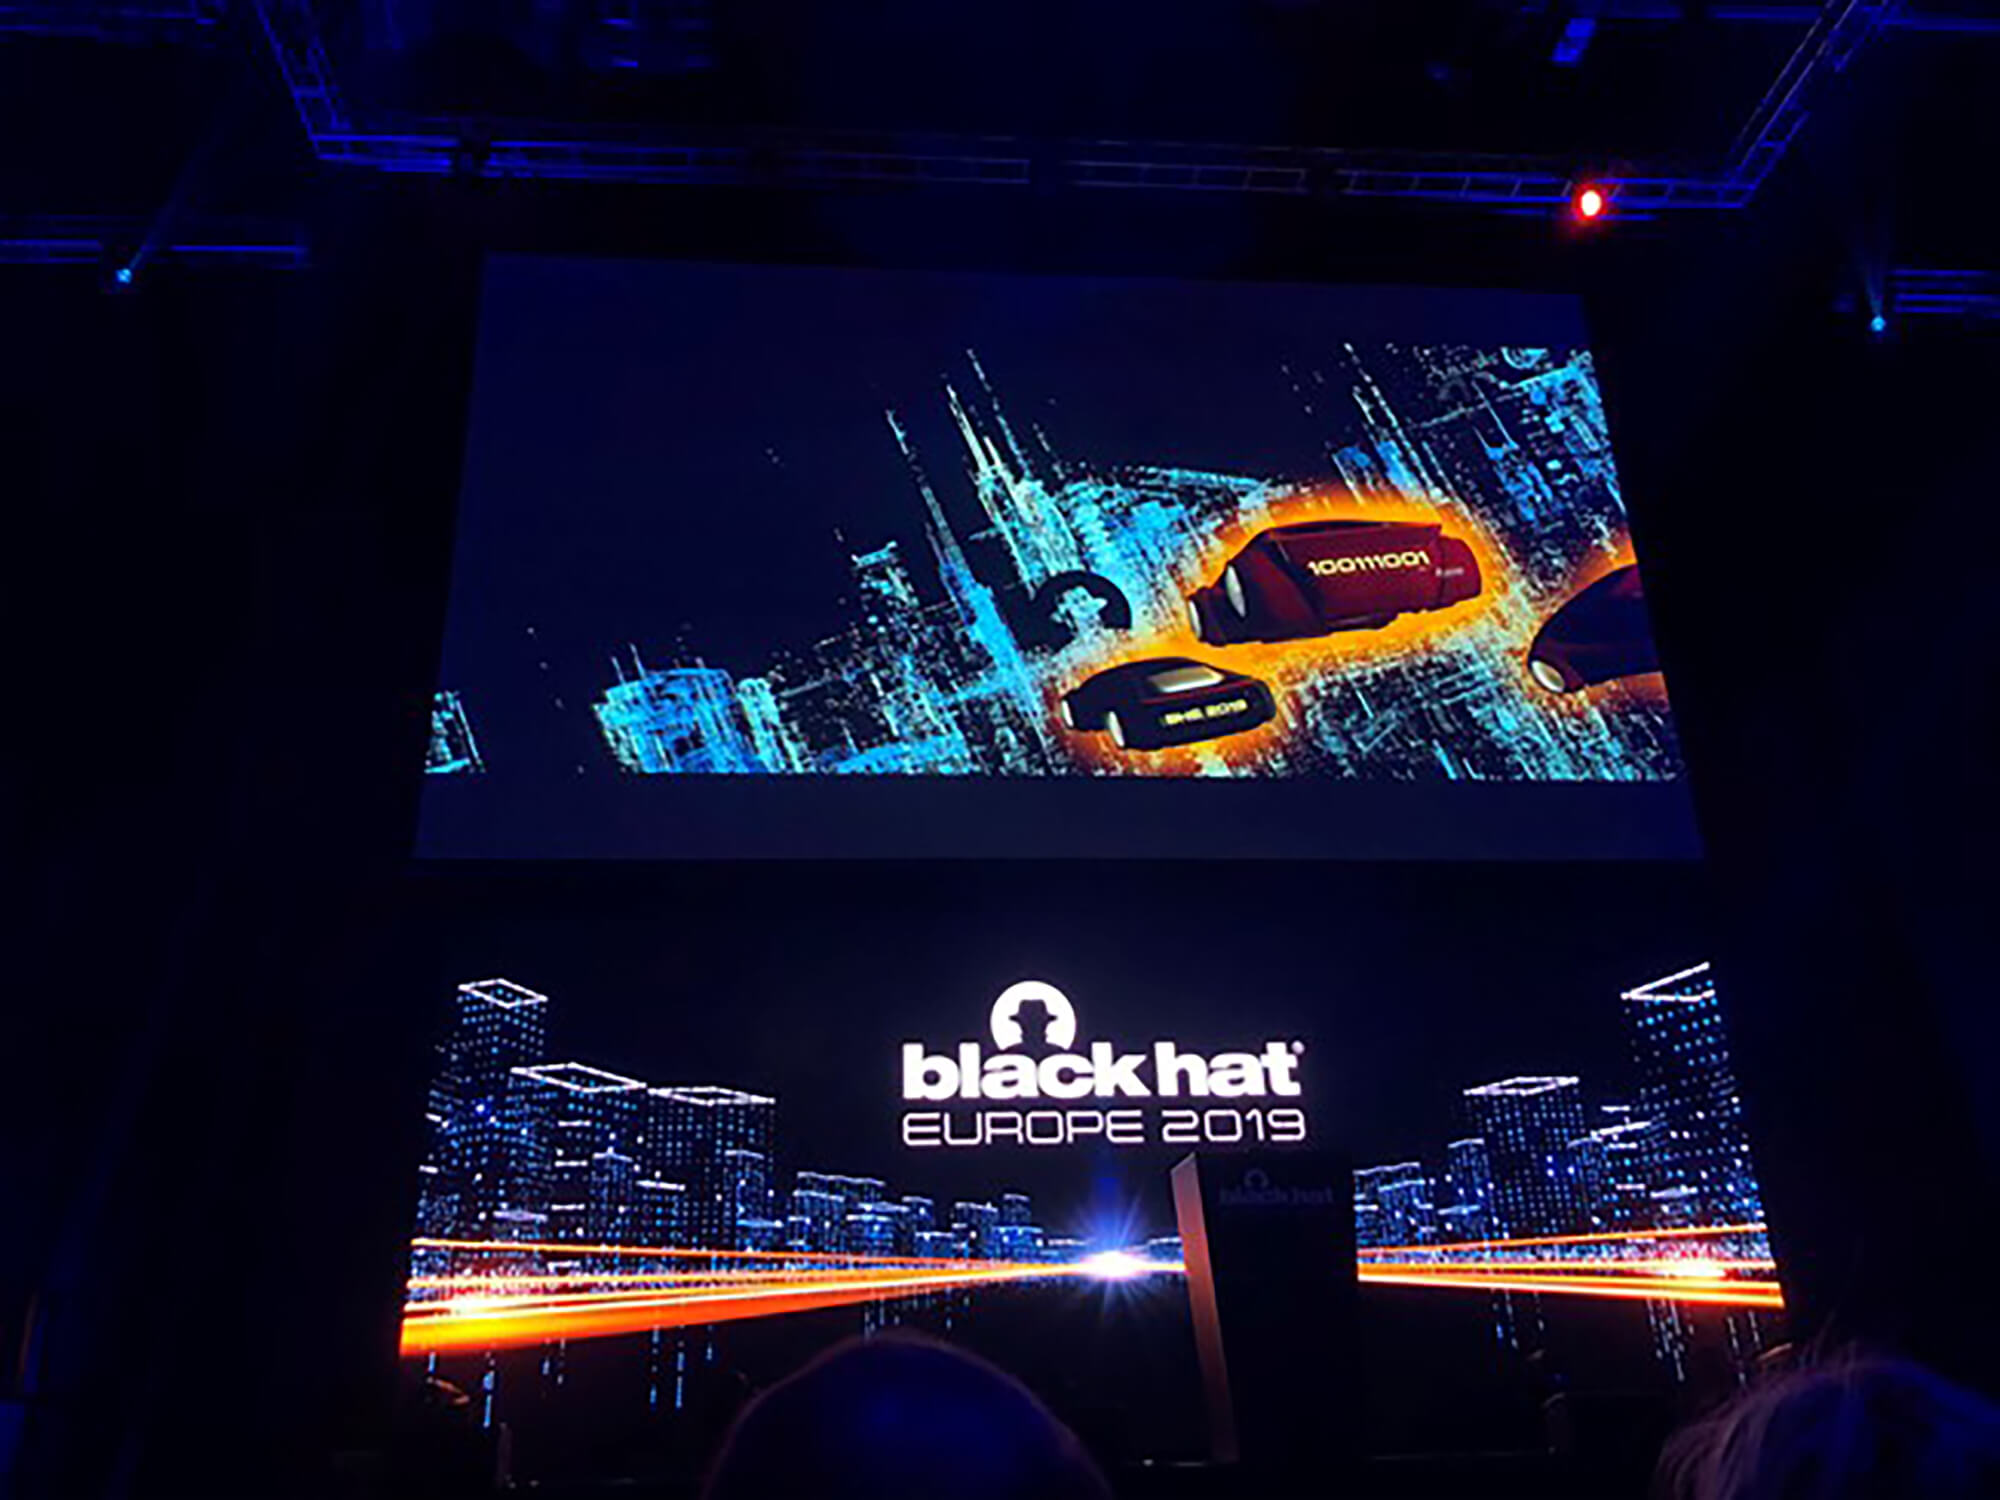 Image of a large screen at the Black Hat Cyber Security conference